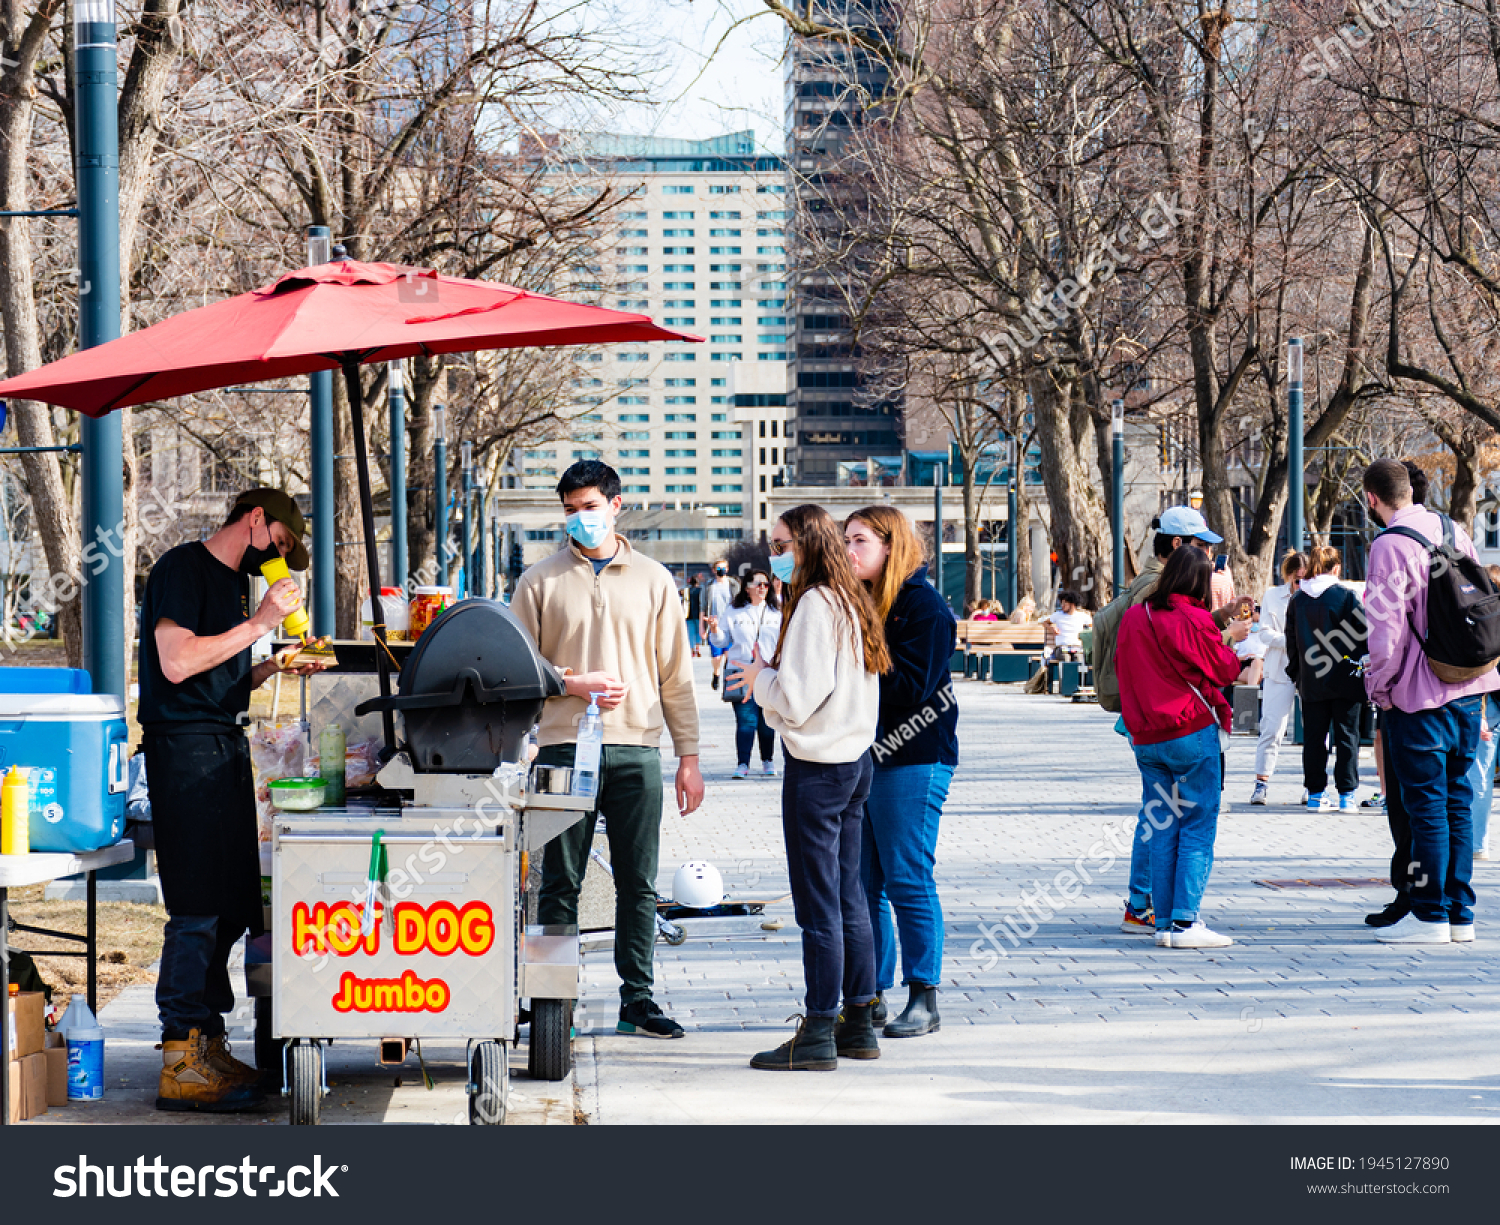 stock-photo-montreal-canada-march-studen